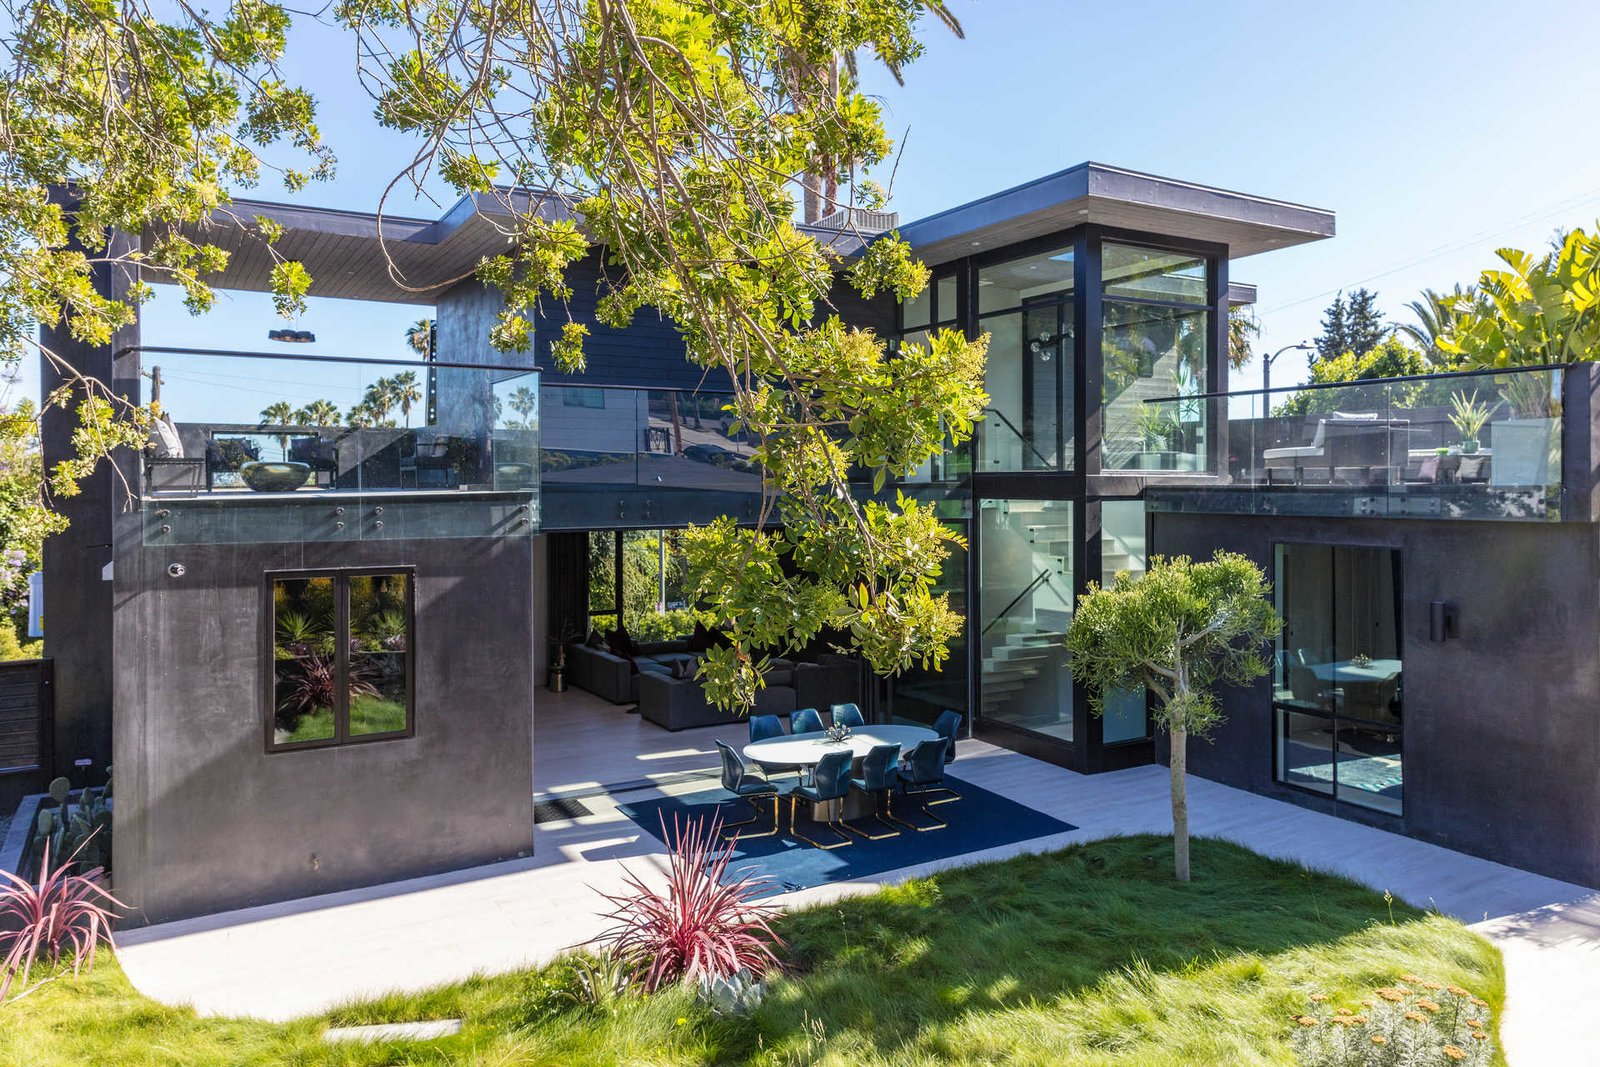 Tagged: Outdoor, Back Yard, Side Yard, and Large Patio, Porch, Deck.  Italian Modernist Home by Zillow